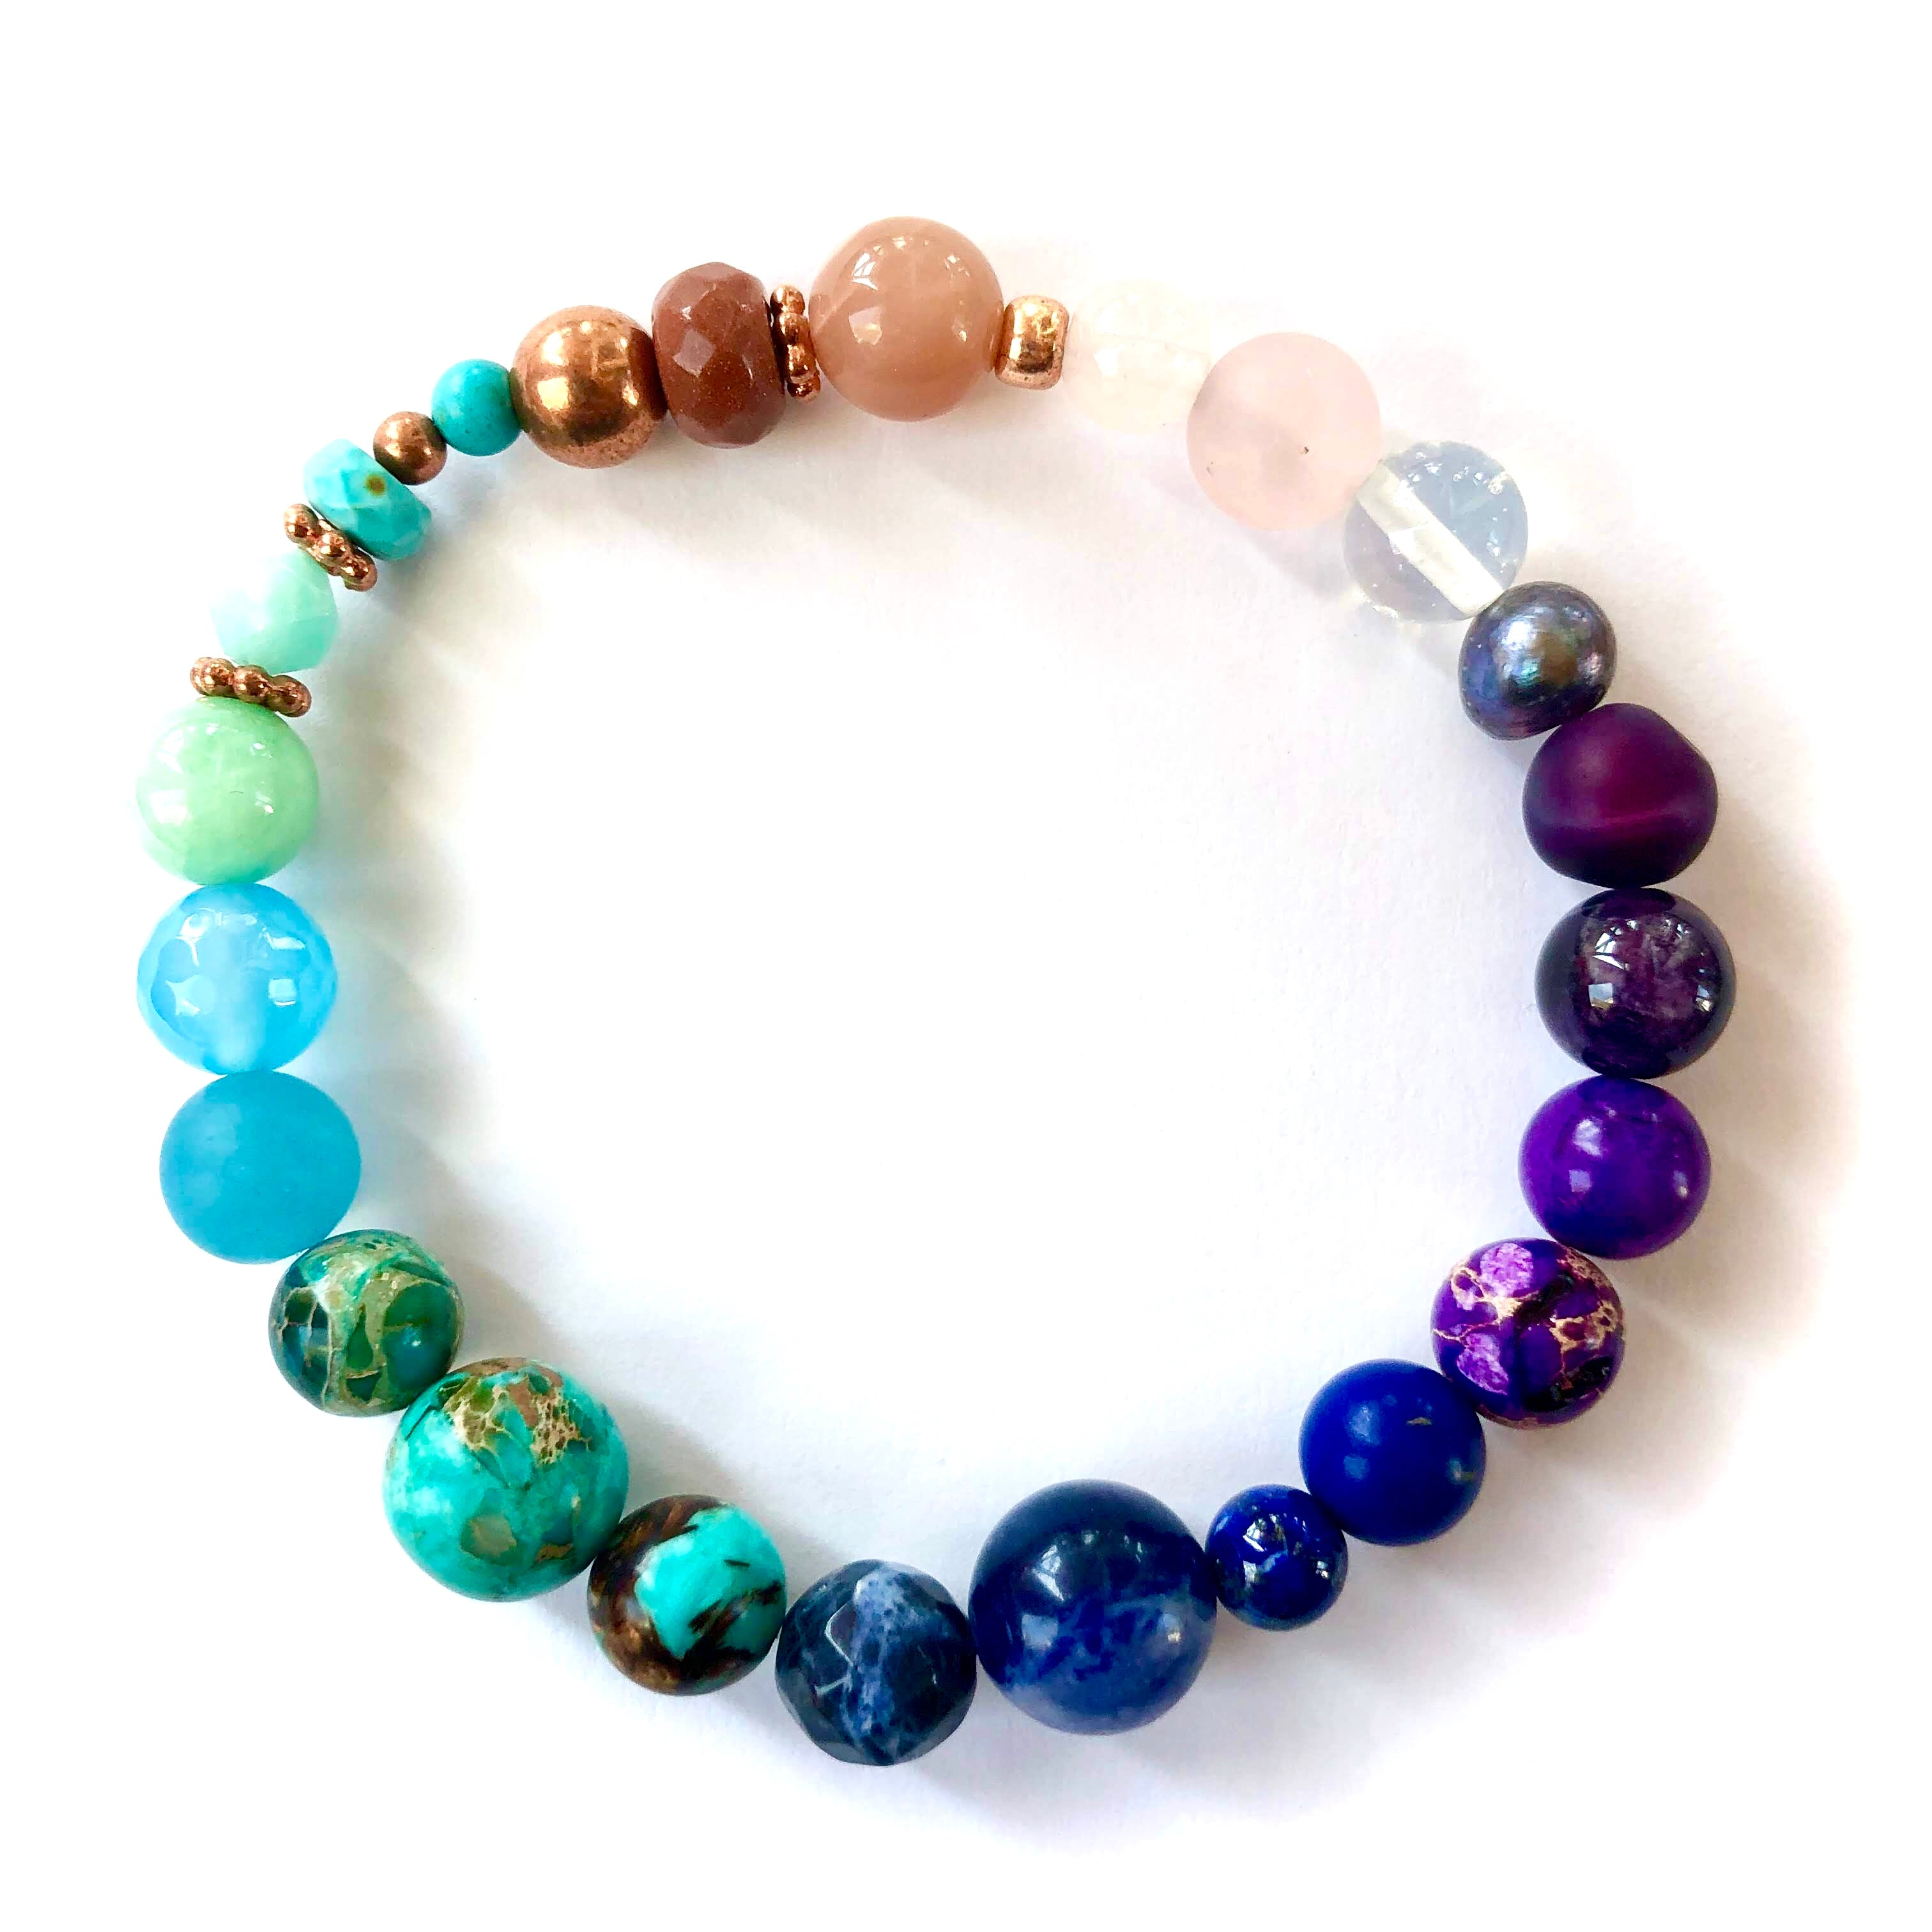 The Mermaid Universe Bracelet